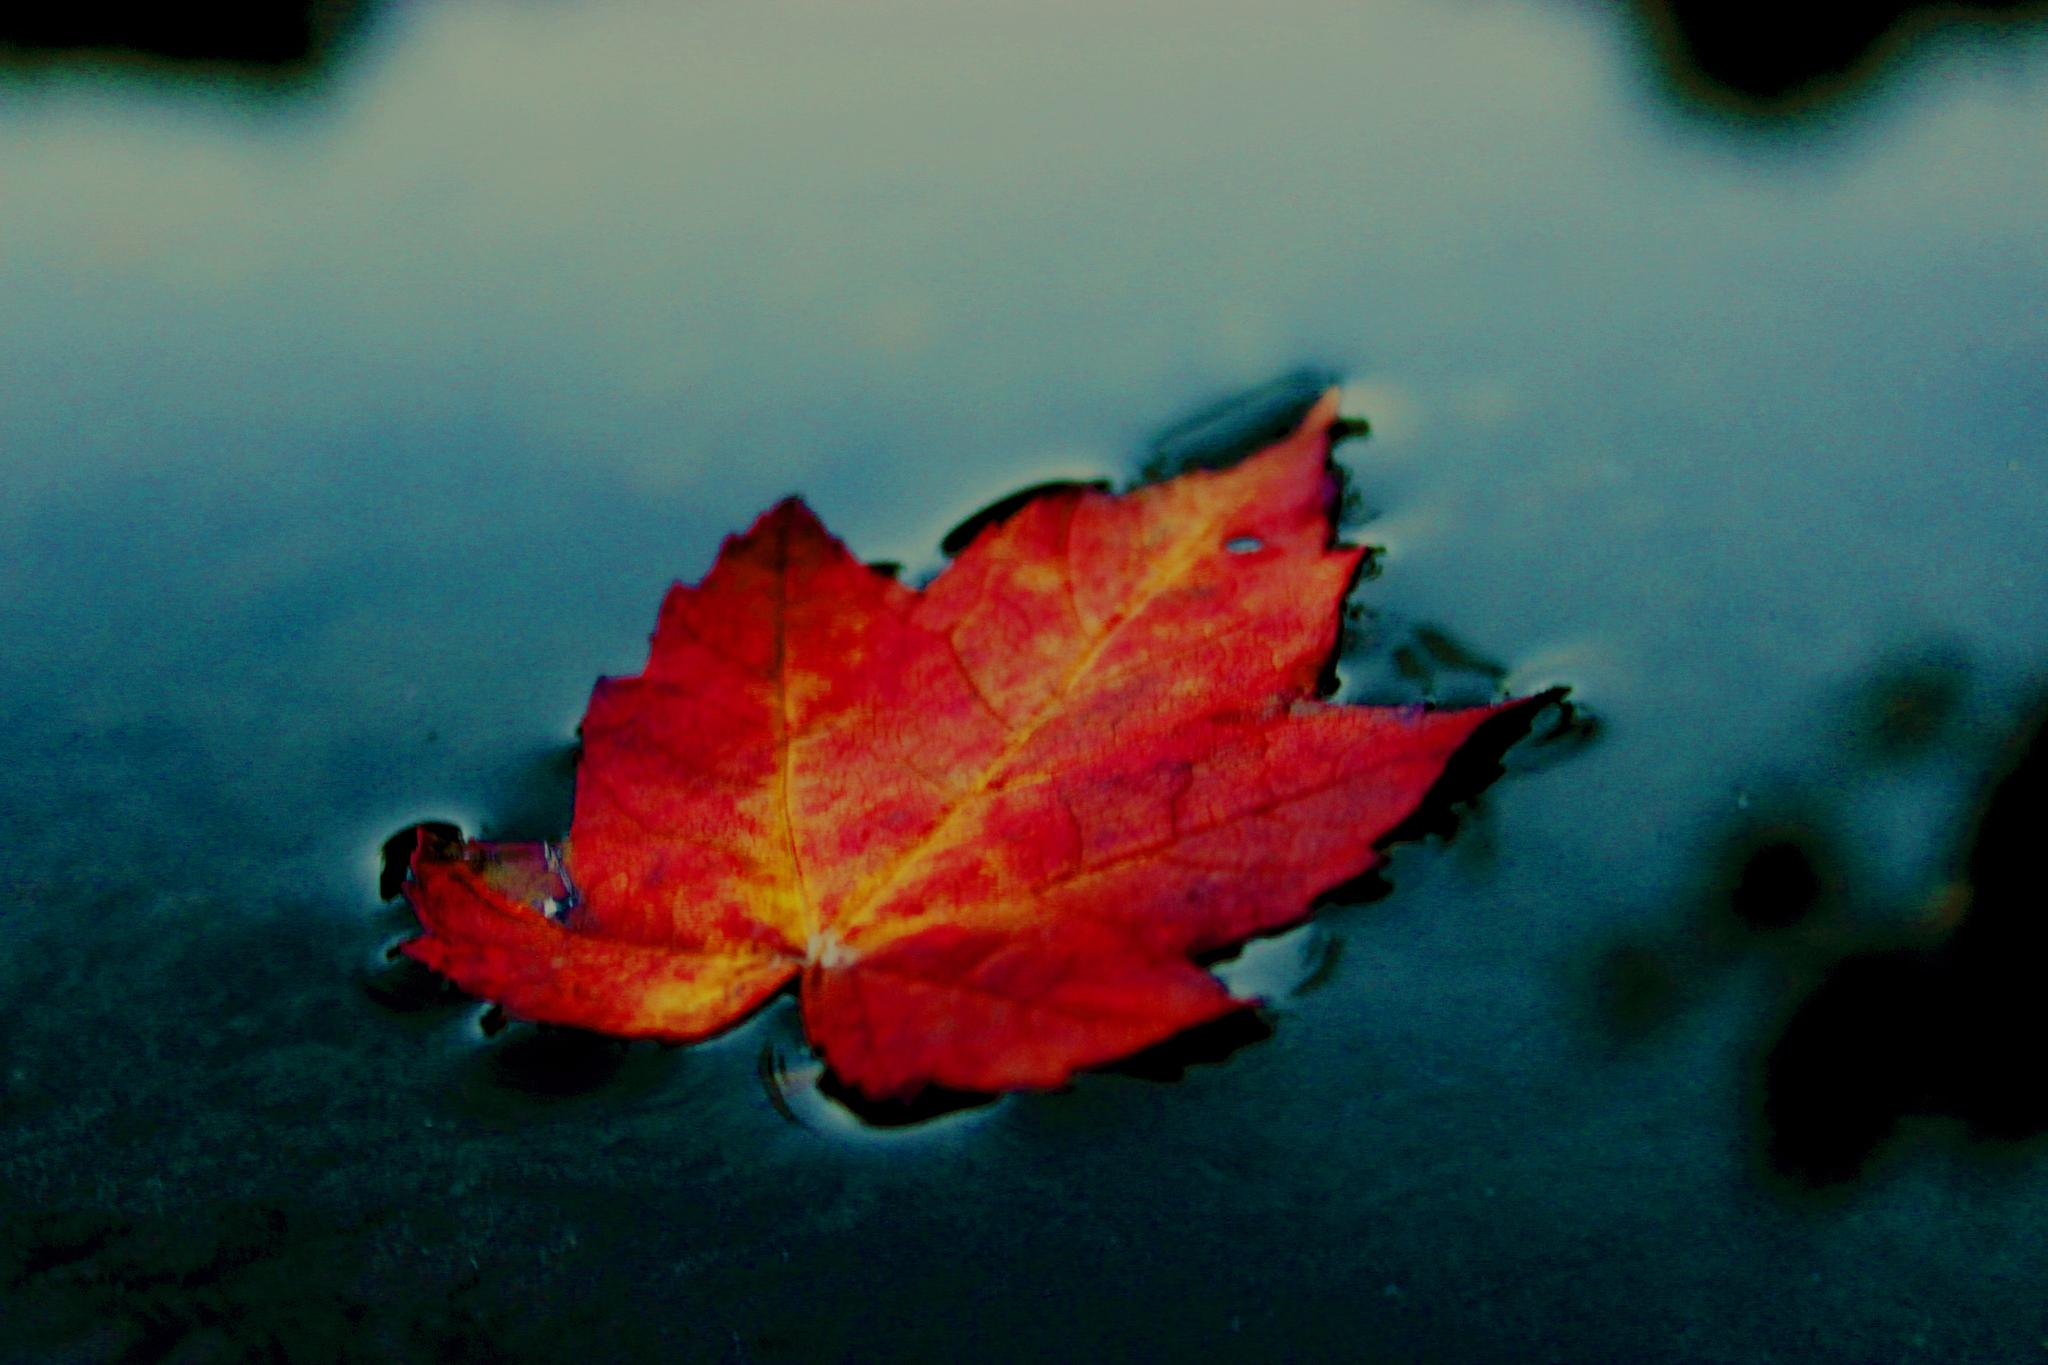 Autumn leaf. by Duval